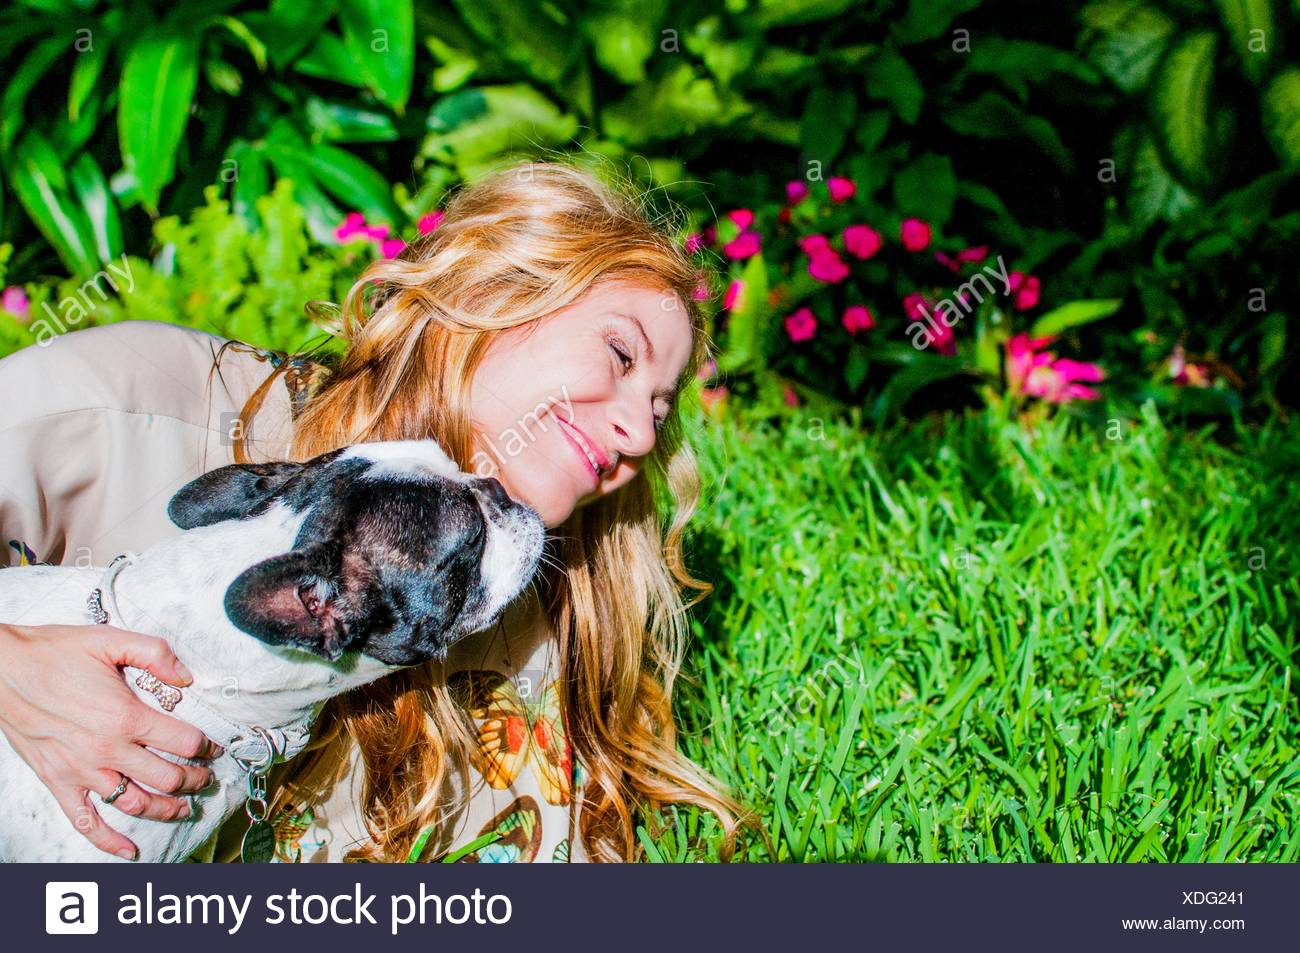 Dog licking woman's face in garden - Stock Image